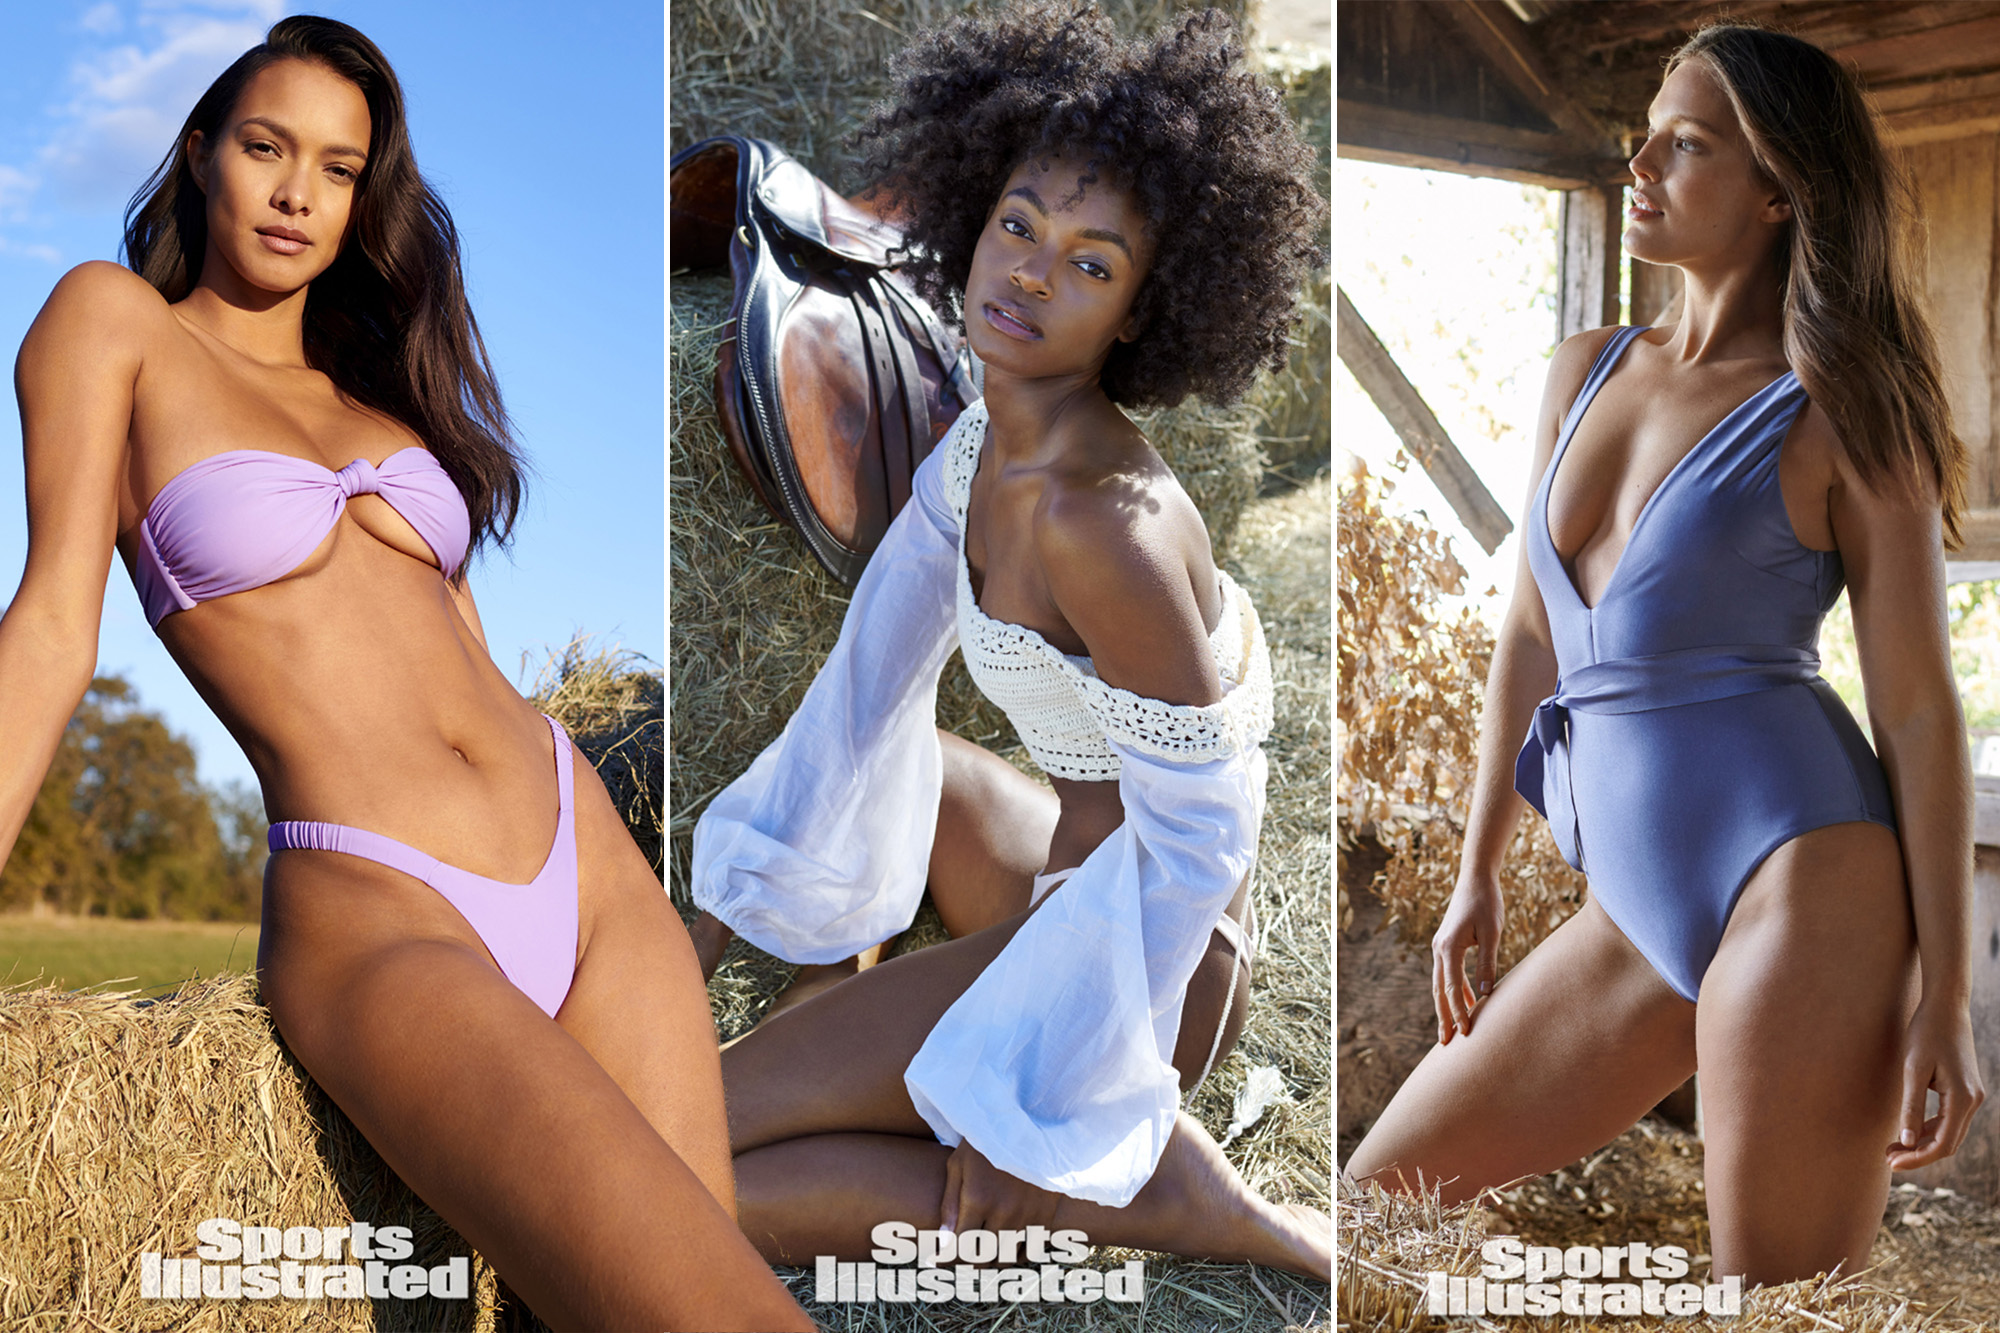 Sports Illustrated teases peek at 2021 swimsuit models